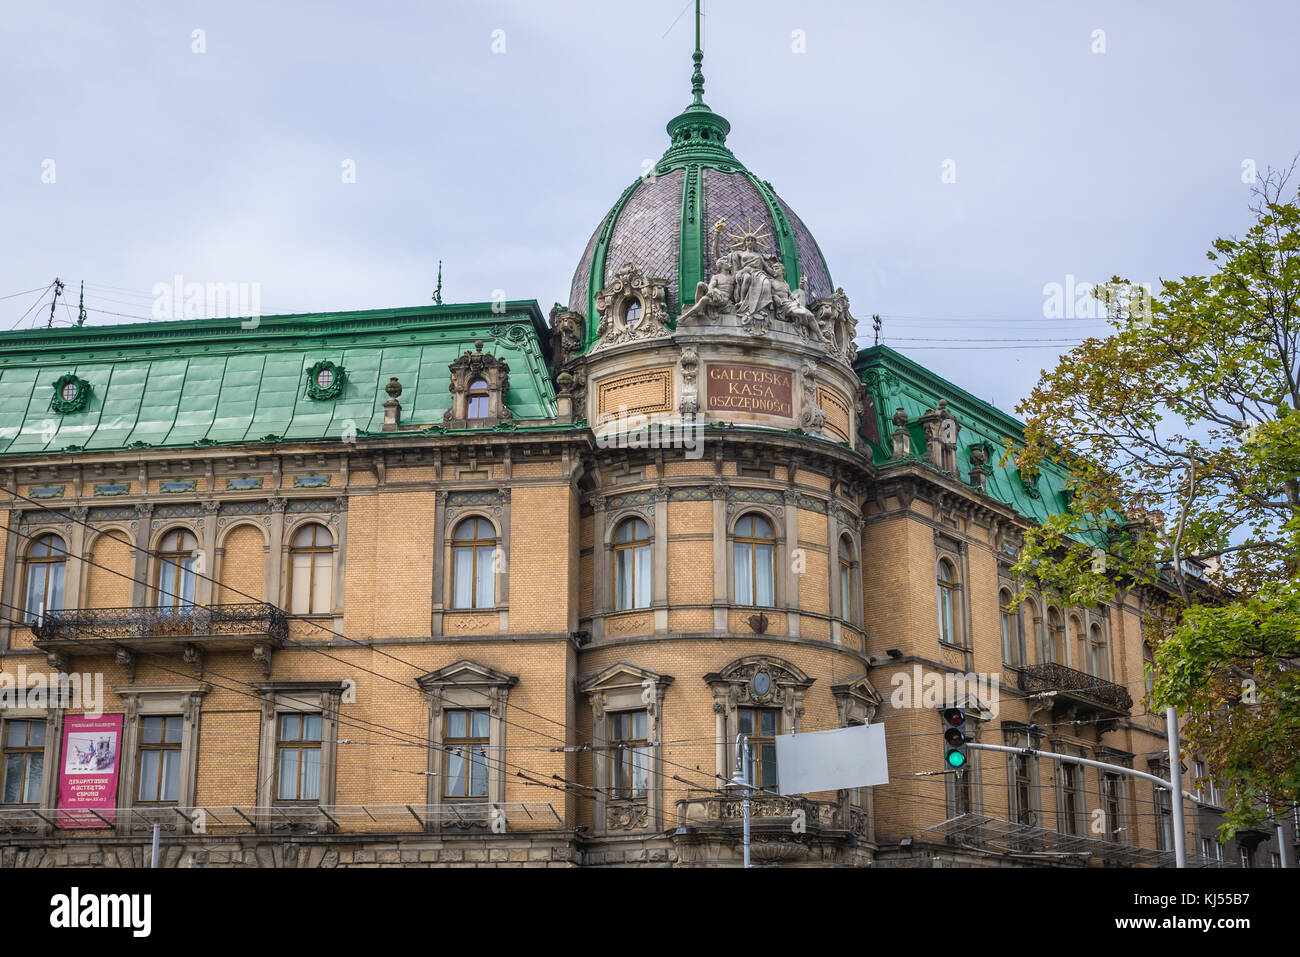 Building of former Galician Savings Bank, now it is a Museum of Ethnography and Art Crafts on the Old Town of Lviv - Stock Image